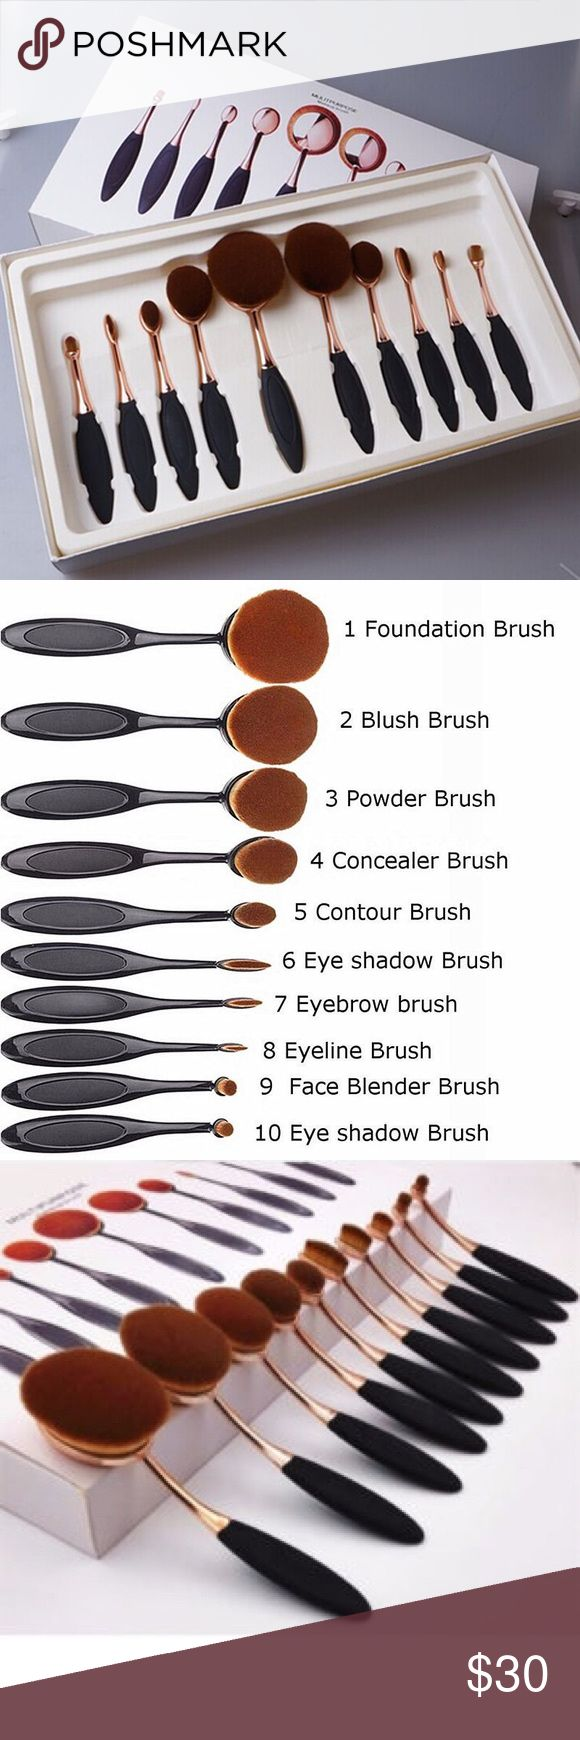 """Oval Makeup Supper Soft Brush Please don't hesitate to """"Offer!"""" You will have a Deal! Just ask me! I will accommodate! Thank you!     ***From highlighting to contouring, these brushes gives you so many options for doing your makeup. The brushes have a round shape design that's perfect for blending foundation, blush, or powder to your face or cheeks. With so many different sized brushes to choose from, you can achieve any look you want! ***** Makeup Brushes & Tools"""